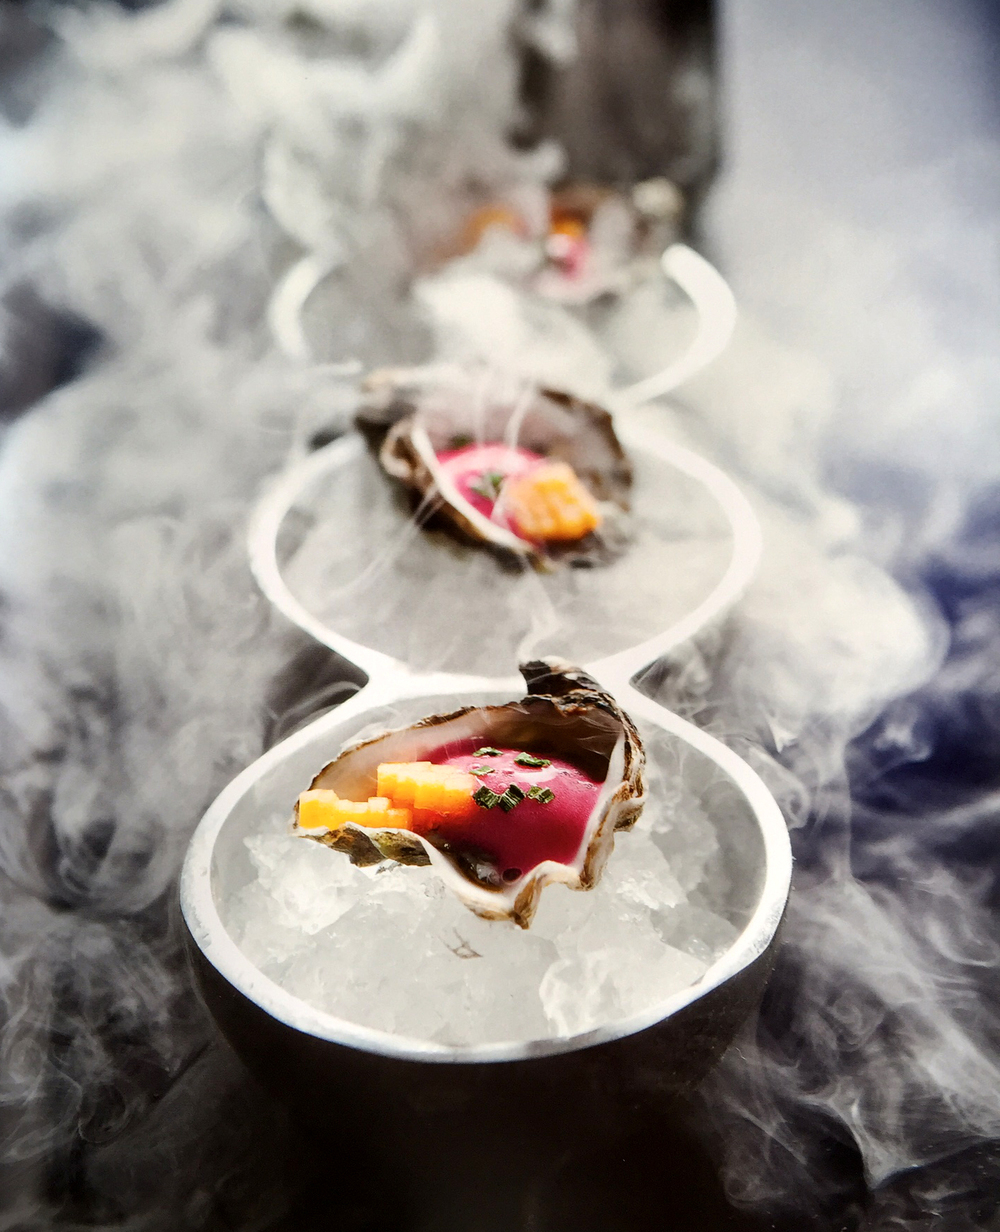 SEA_SALT_BOOK_BY_FABRIZIO_AIELLI_KUMAMOTO_OYSTERS_ON_A_FOGGY_DAY_IN_VENICE_DICH_PHOTOGRAPHED_BY_VANESSA_ROGERS_PHOTOGRAPHY